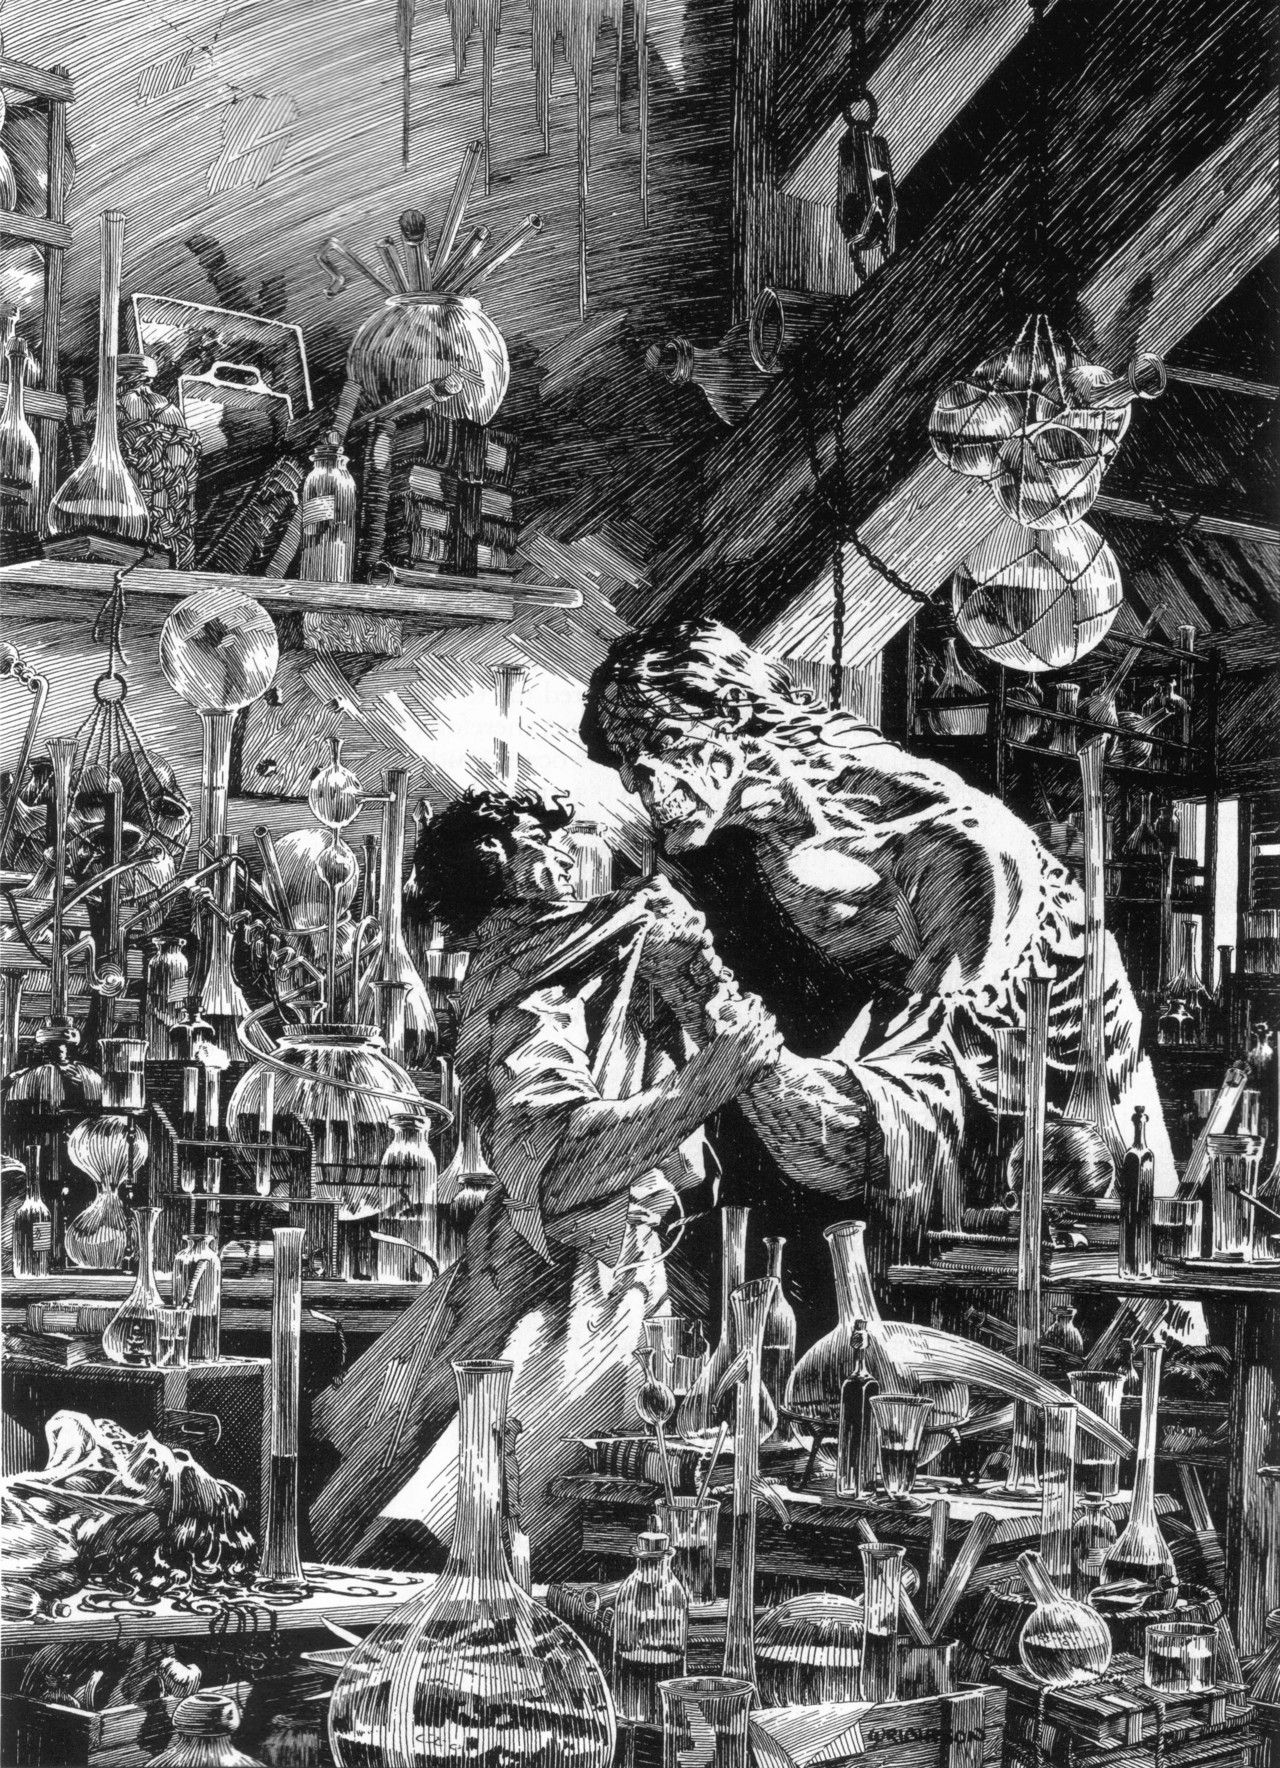 an overview to mary shelleys horror story frankenstein Project gutenberg's frankenstein, by mary wollstonecraft (godwin) shelley this   the next morning i delivered my letters of introduction and paid a visit to  some  my tale was not one to announce publicly its astounding horror would  be.